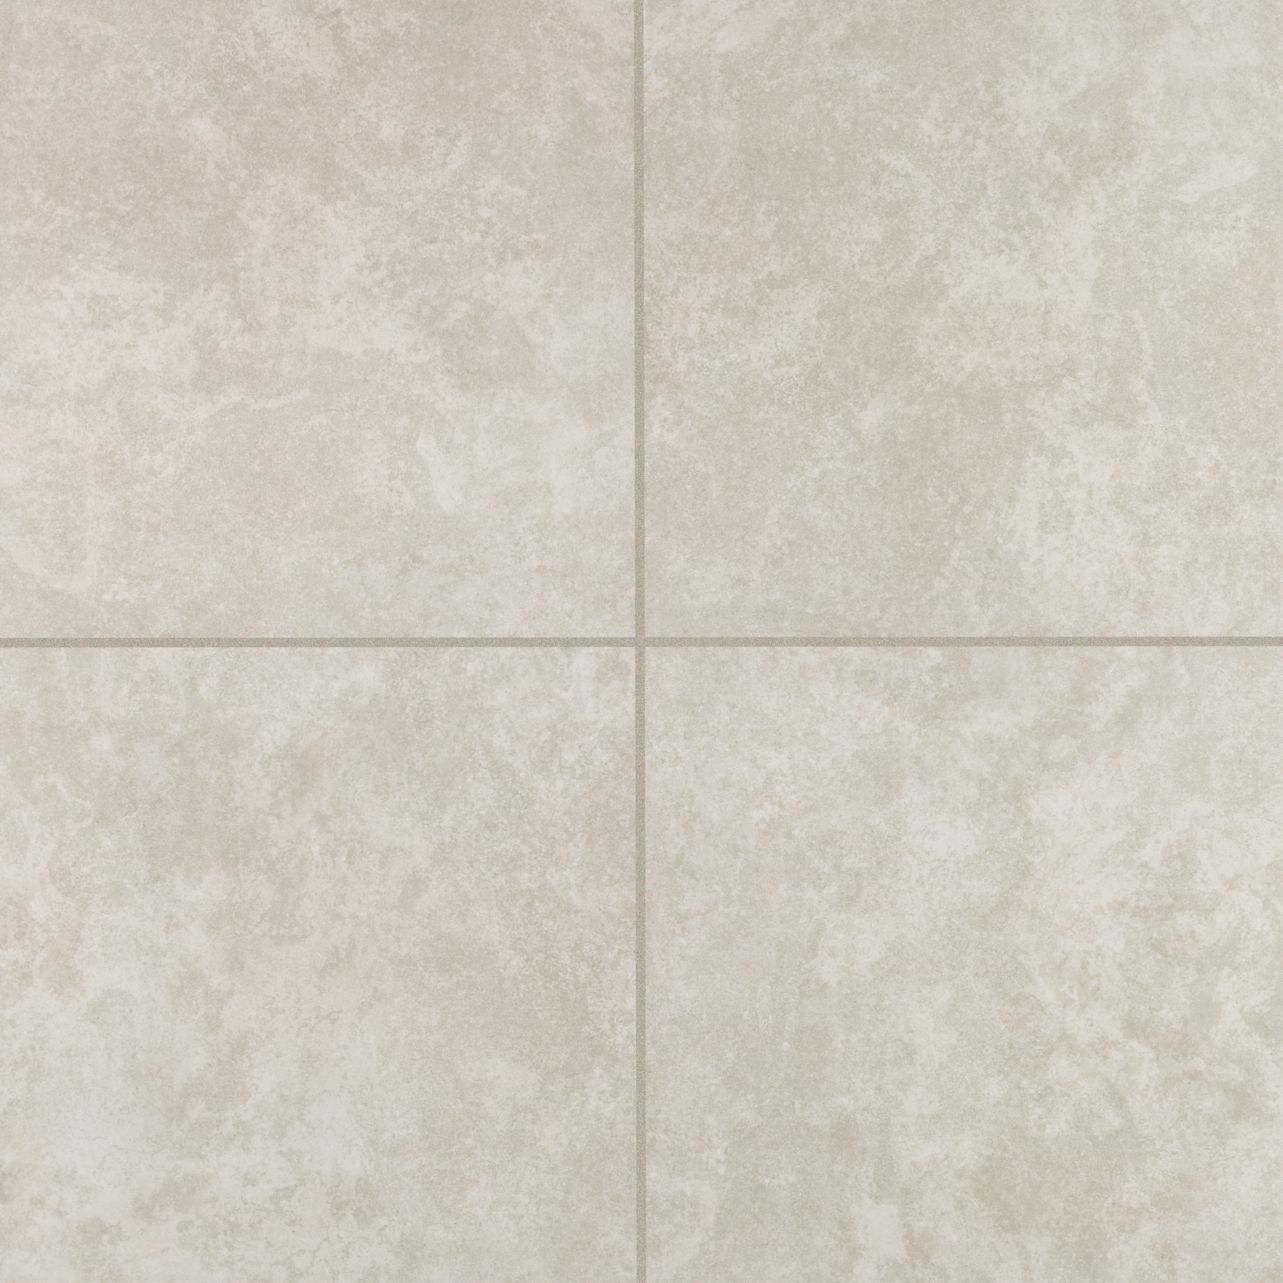 CeramicPorcelainTile AstelloFloor T810F-AN33 Cream